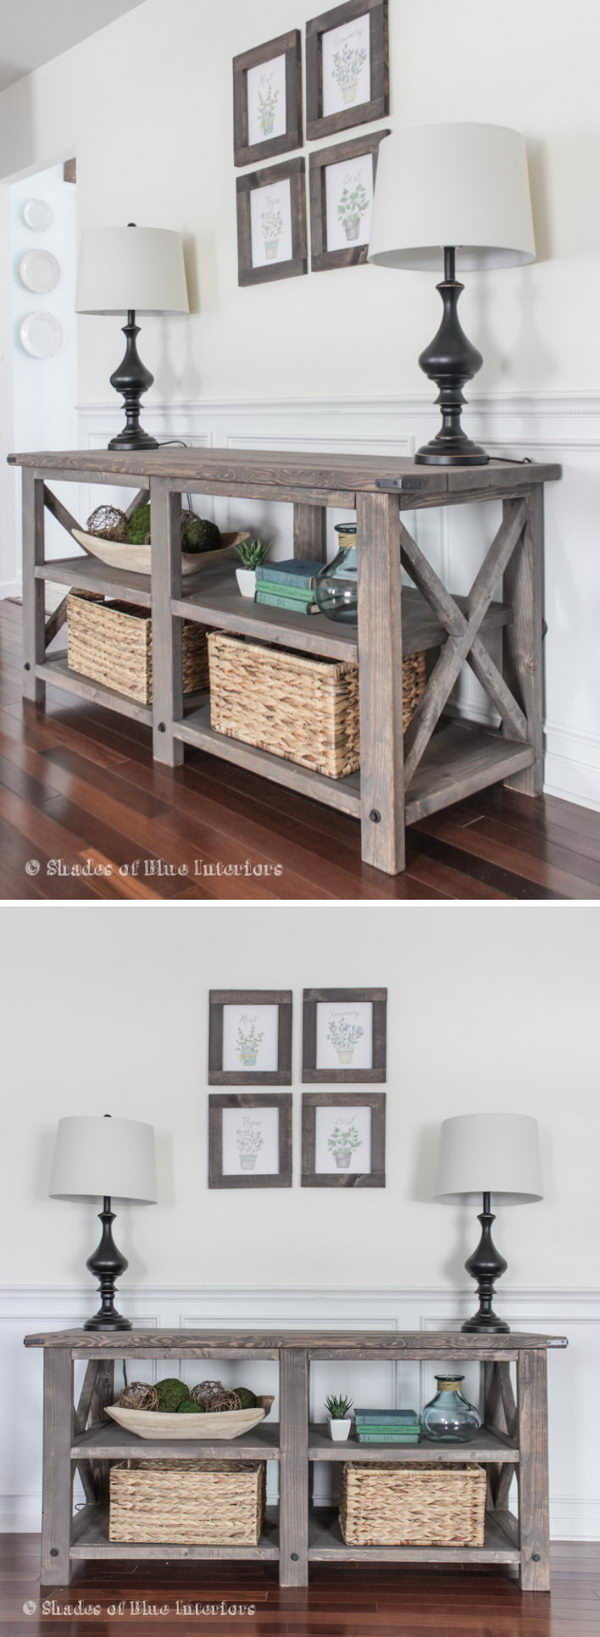 20 Easy Diy Console Table And Sofa Ideas 2017